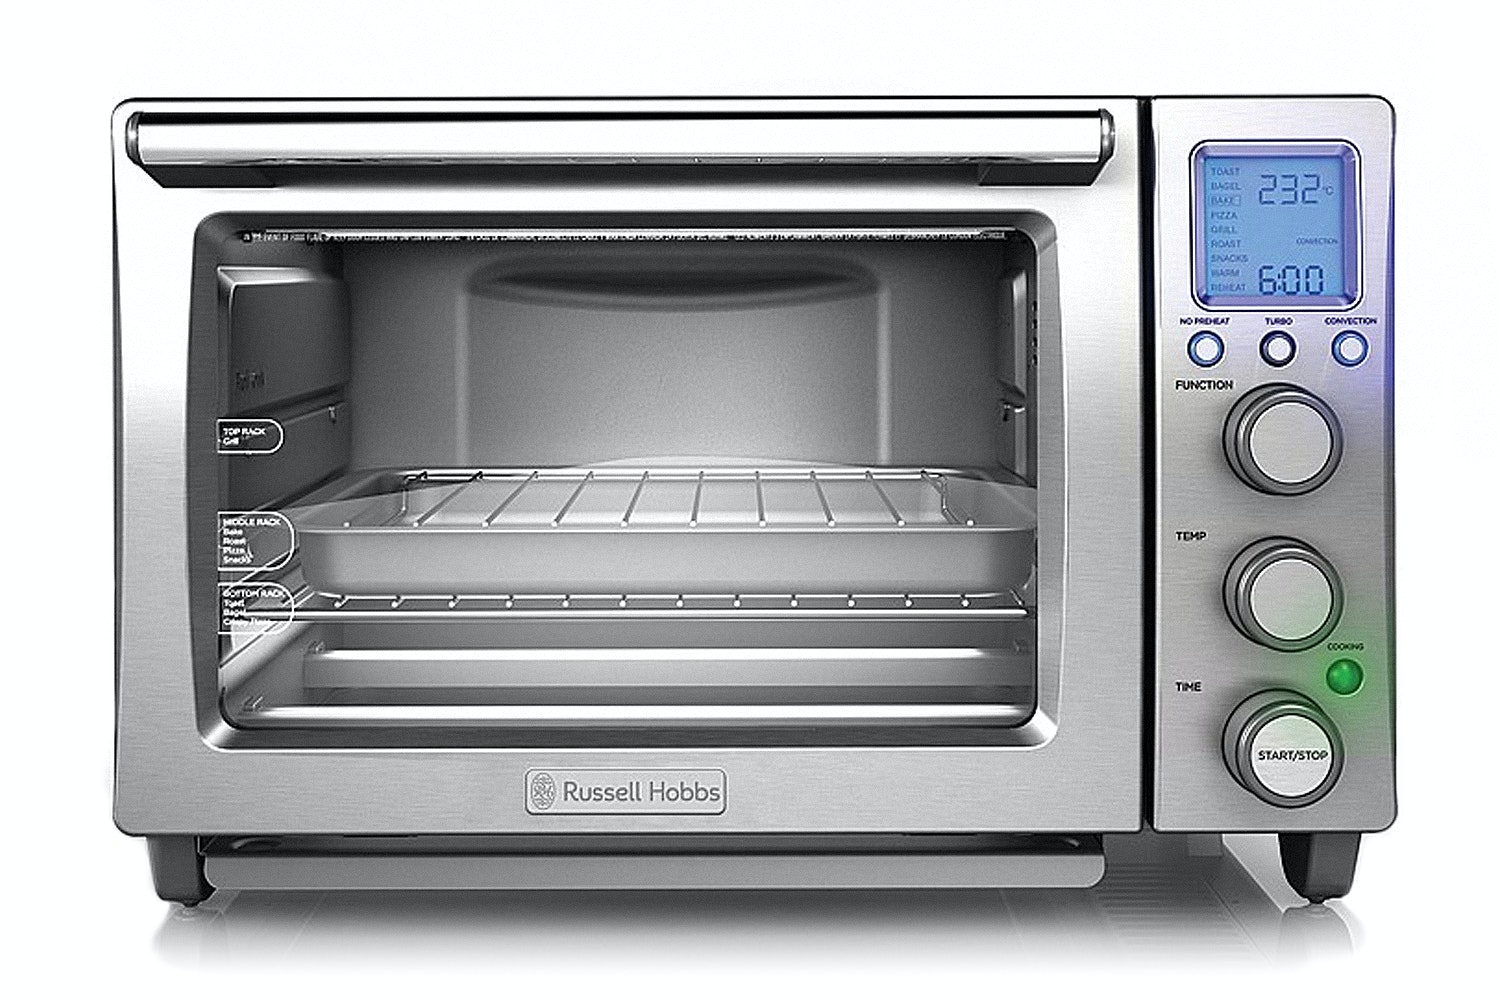 Convection oven is a worthwhile thing or wasted money 41